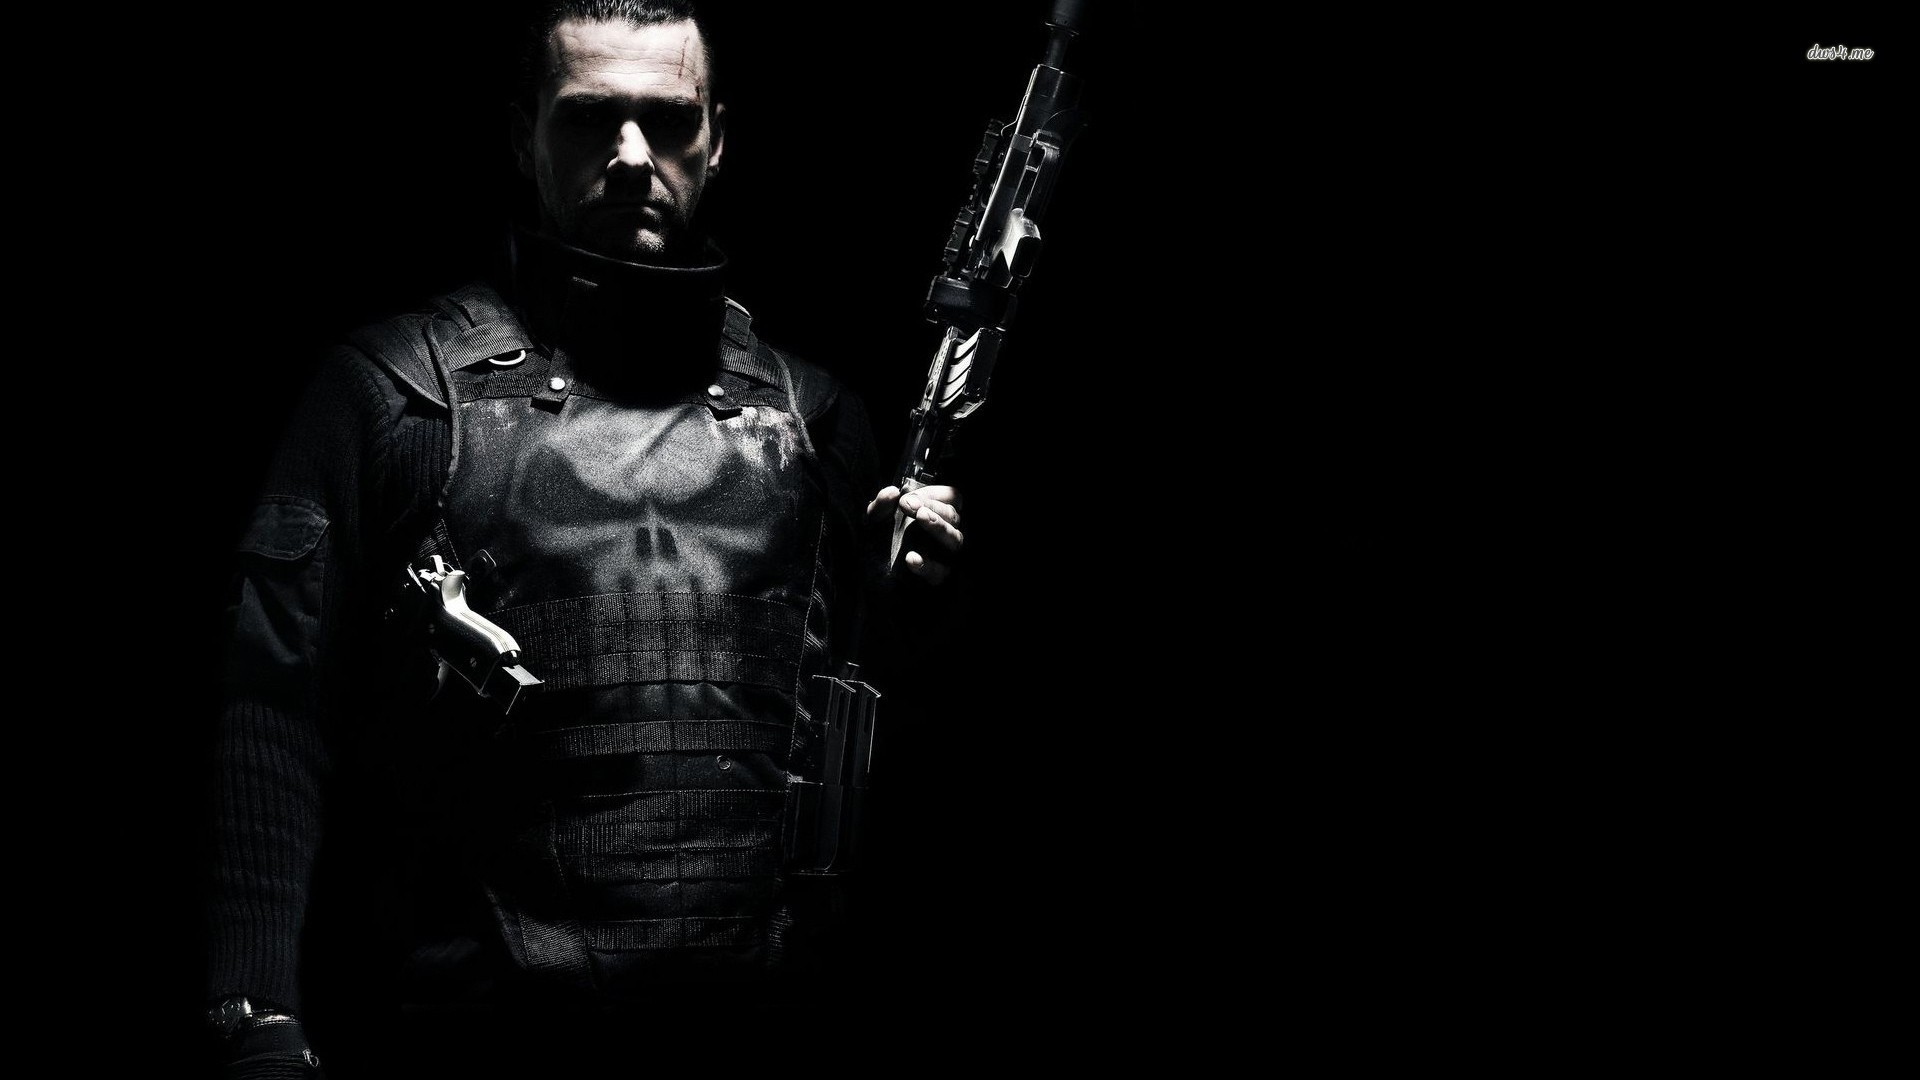 Punisher Wallpaper PC Attachment 16390 – HD Wallpapers Site